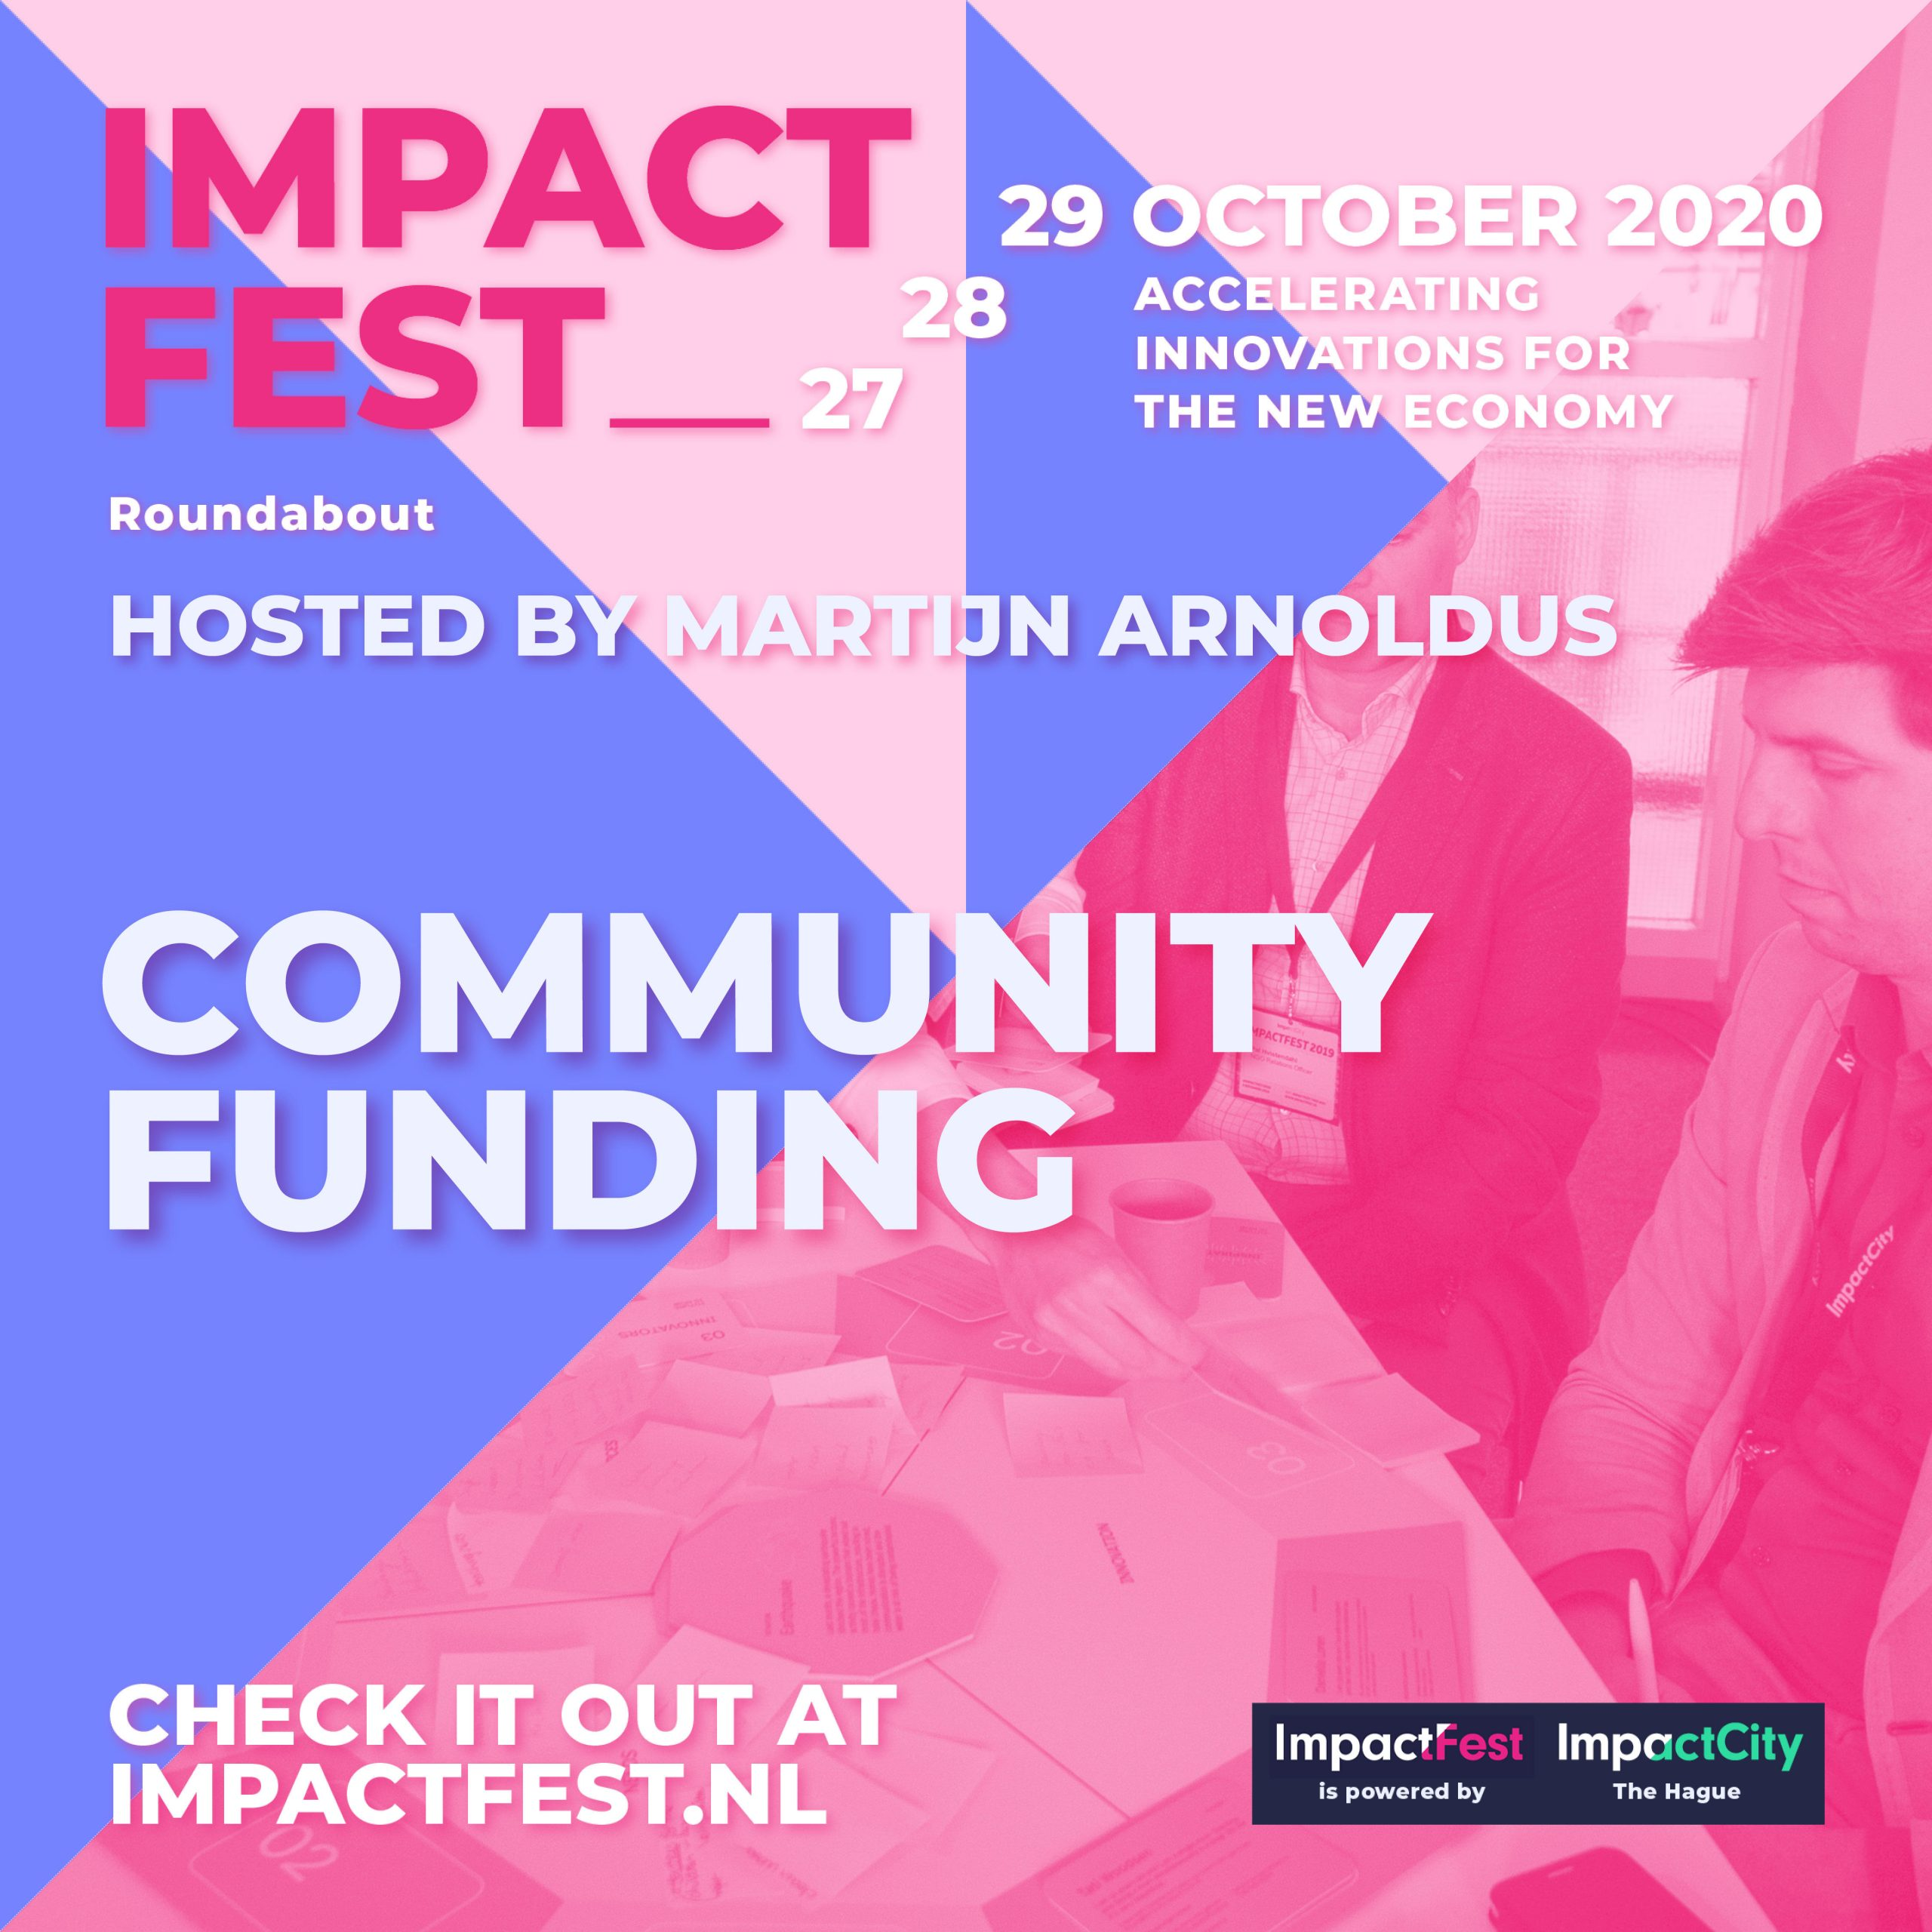 Community Funding at ImpactFest 2020